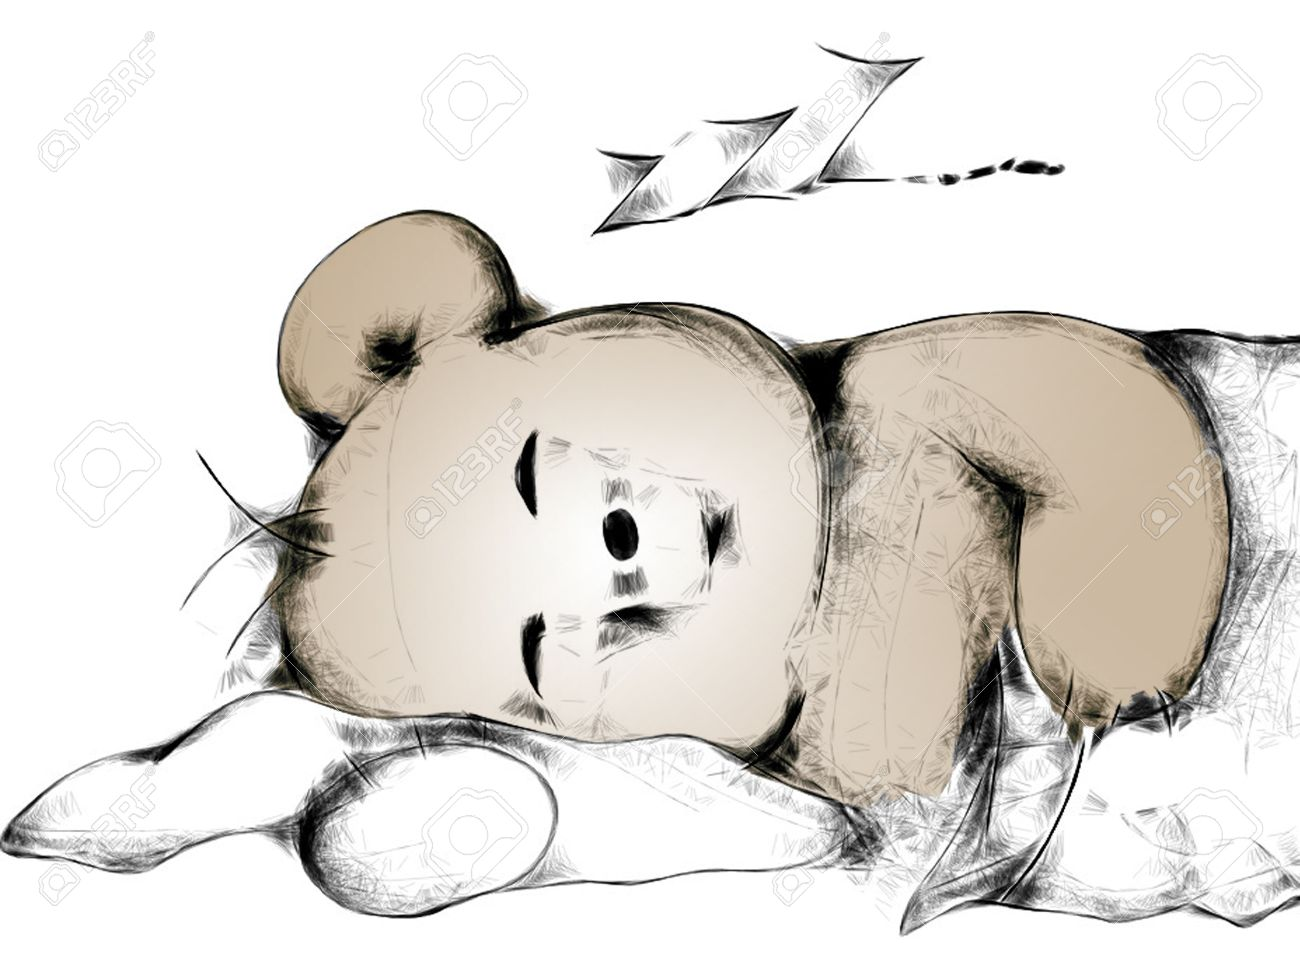 1300x977 Sleeping Cartoon Teddy Bear Stock Photo, Picture And Royalty Free